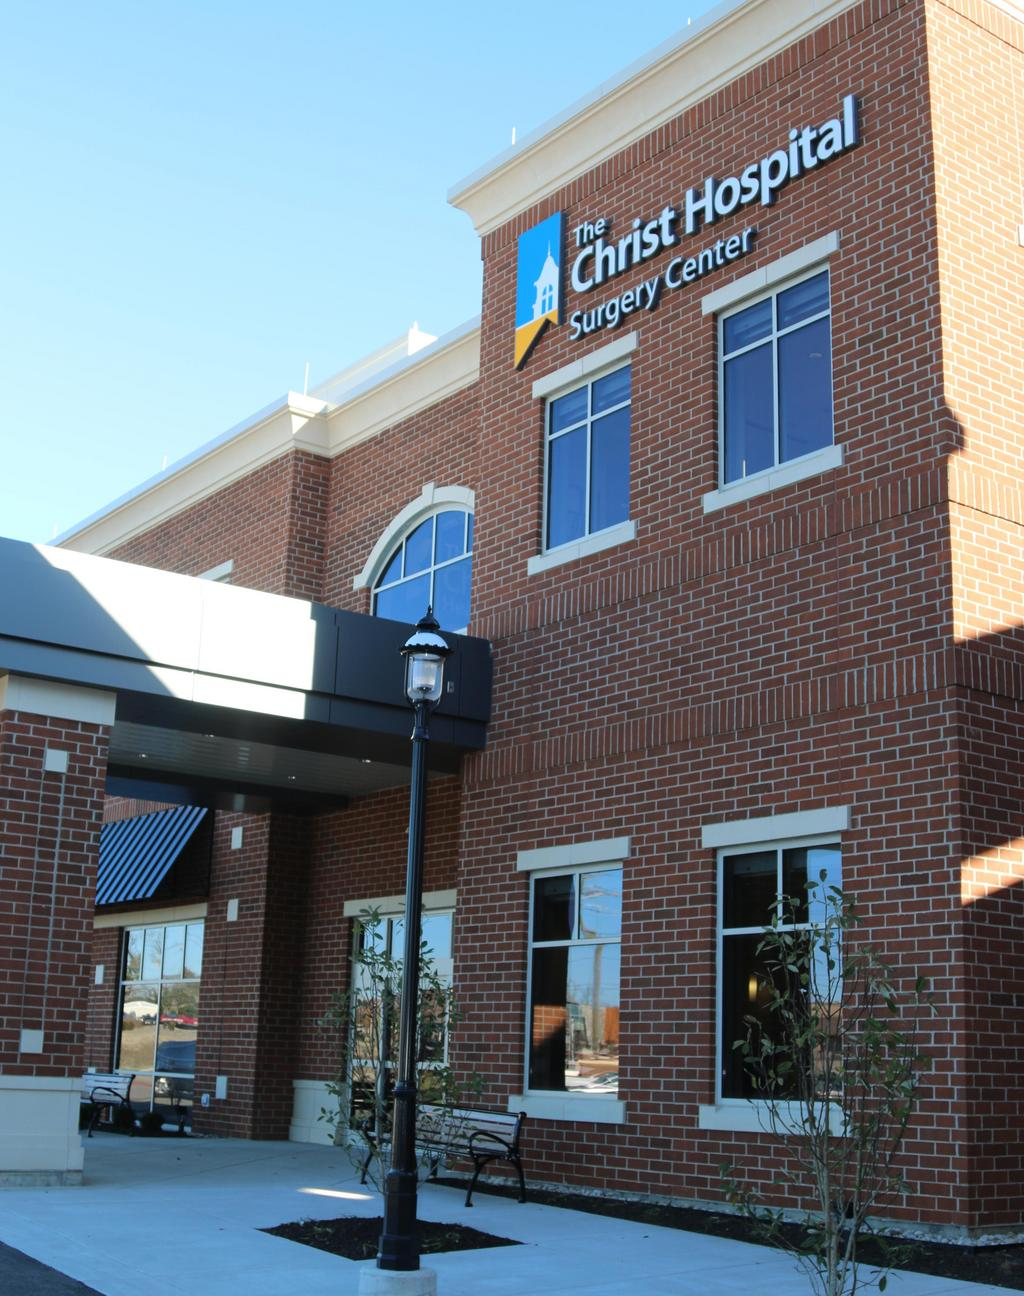 Christ hospital launches suburban cincinnati center to combat cancer cincinnati business courier